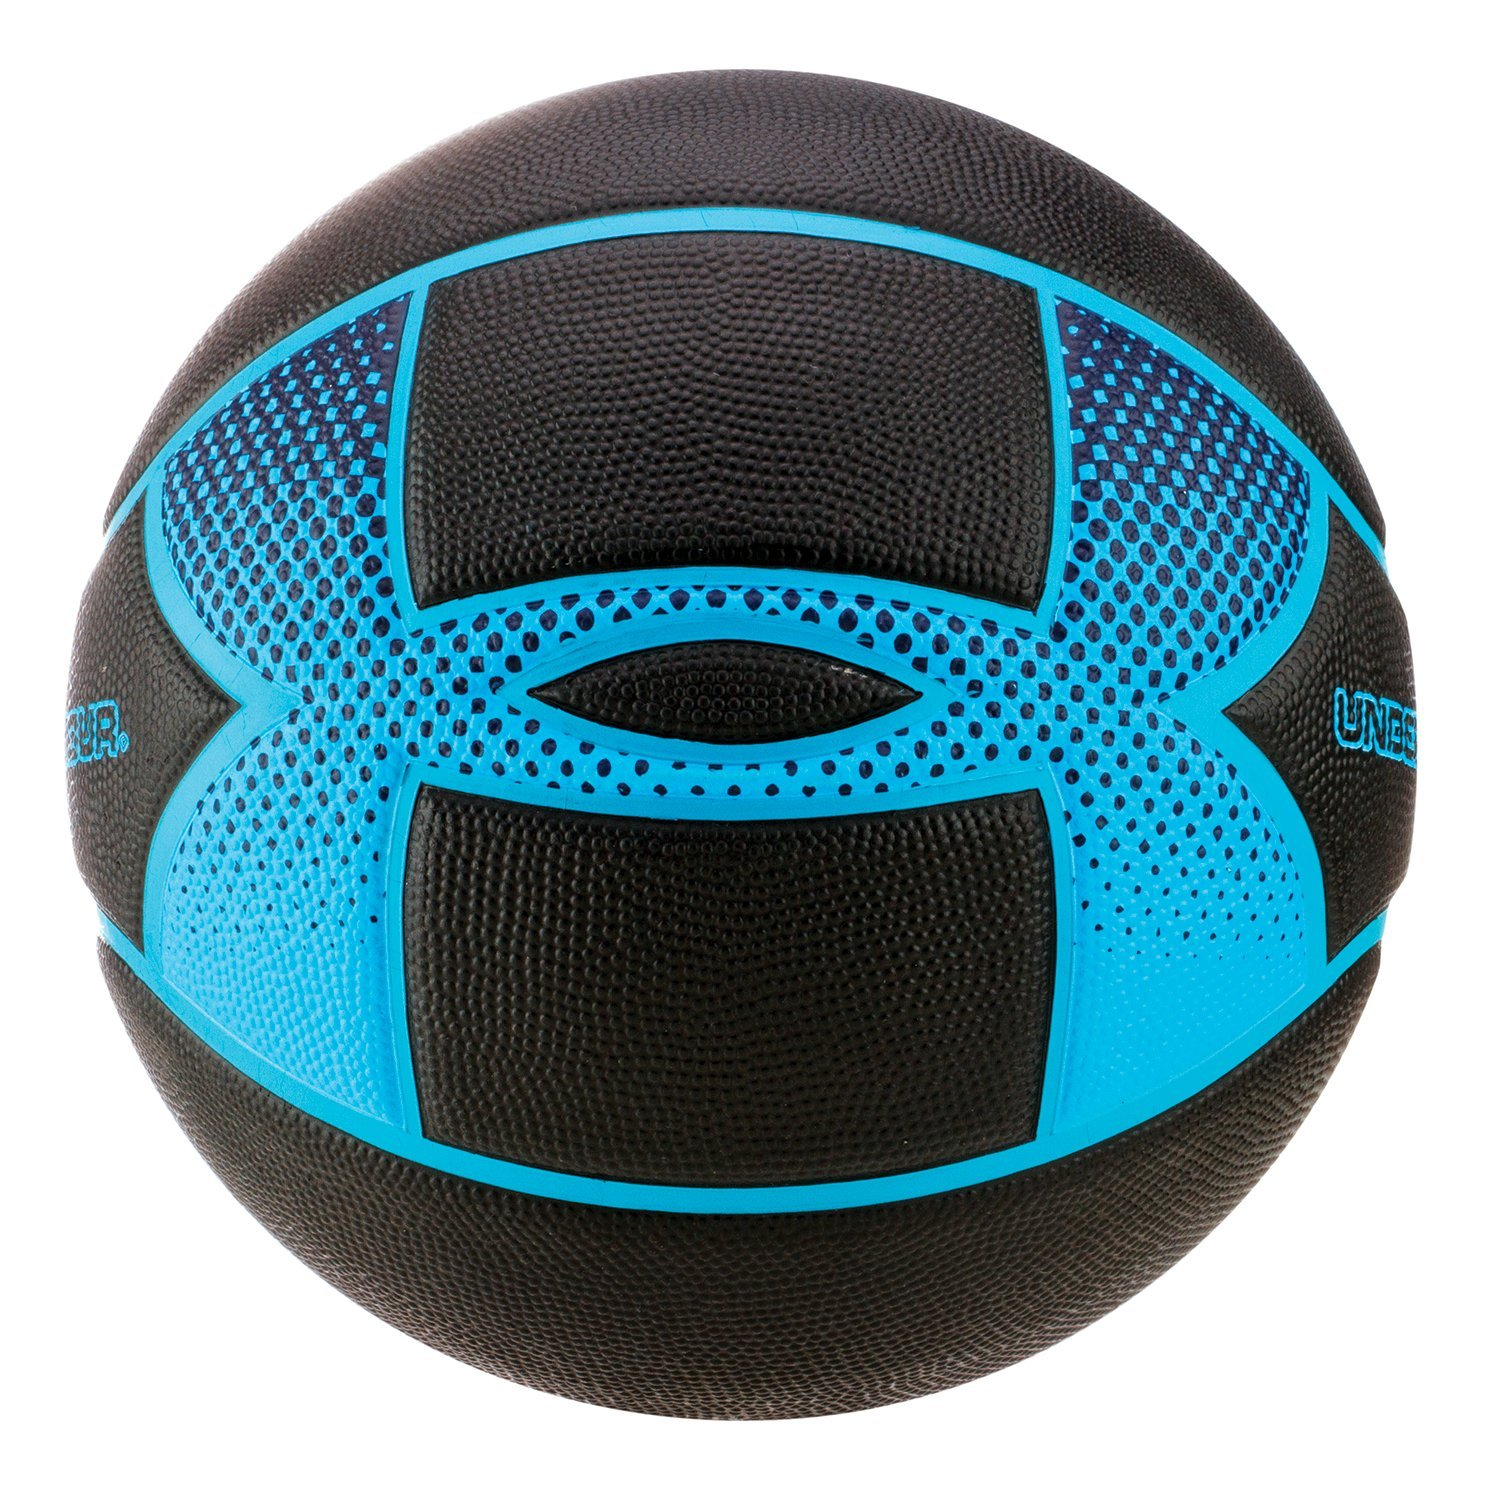 NEW 295 Basketball Blue/Black Under Armour Ultimate Grip Feel Dual-Density Cover eBay